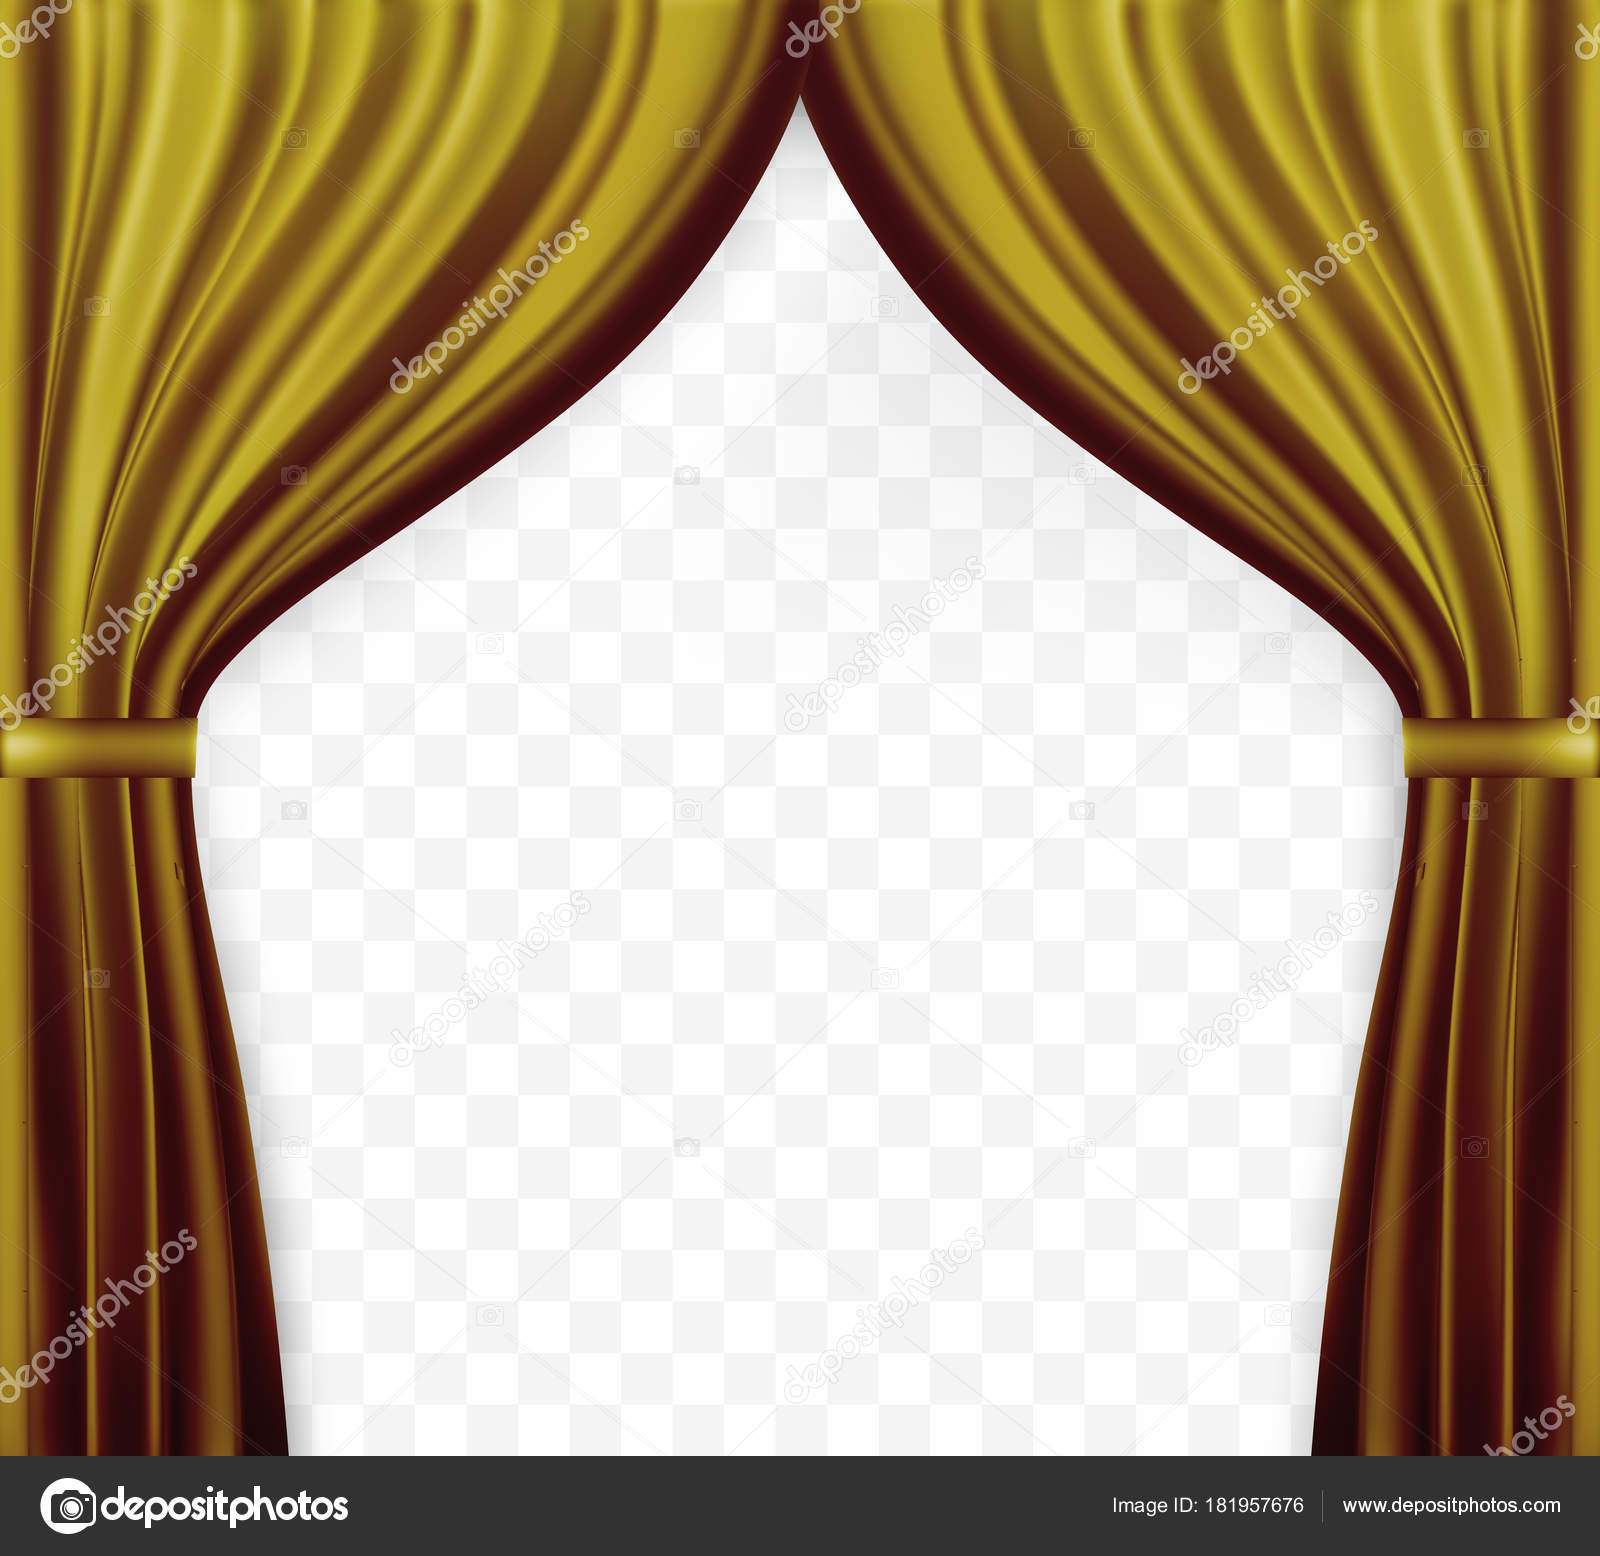 Naturalistic Image Of Curtain Open Curtains Gold Color On Transparent Background Vector Illustration